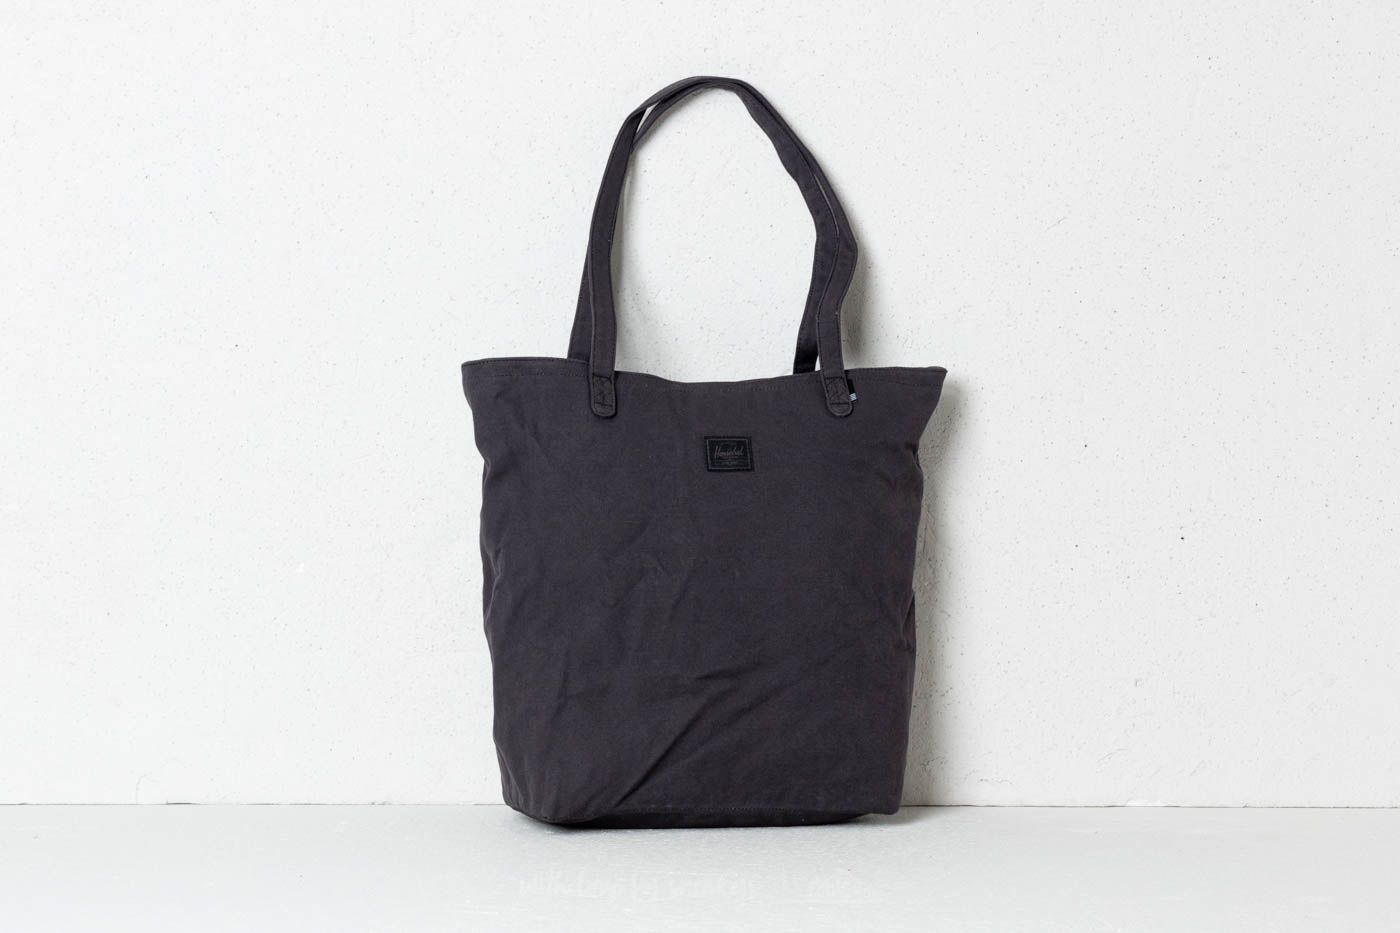 d72b33eb91be Herschel Supply Co. Mica Tote Black